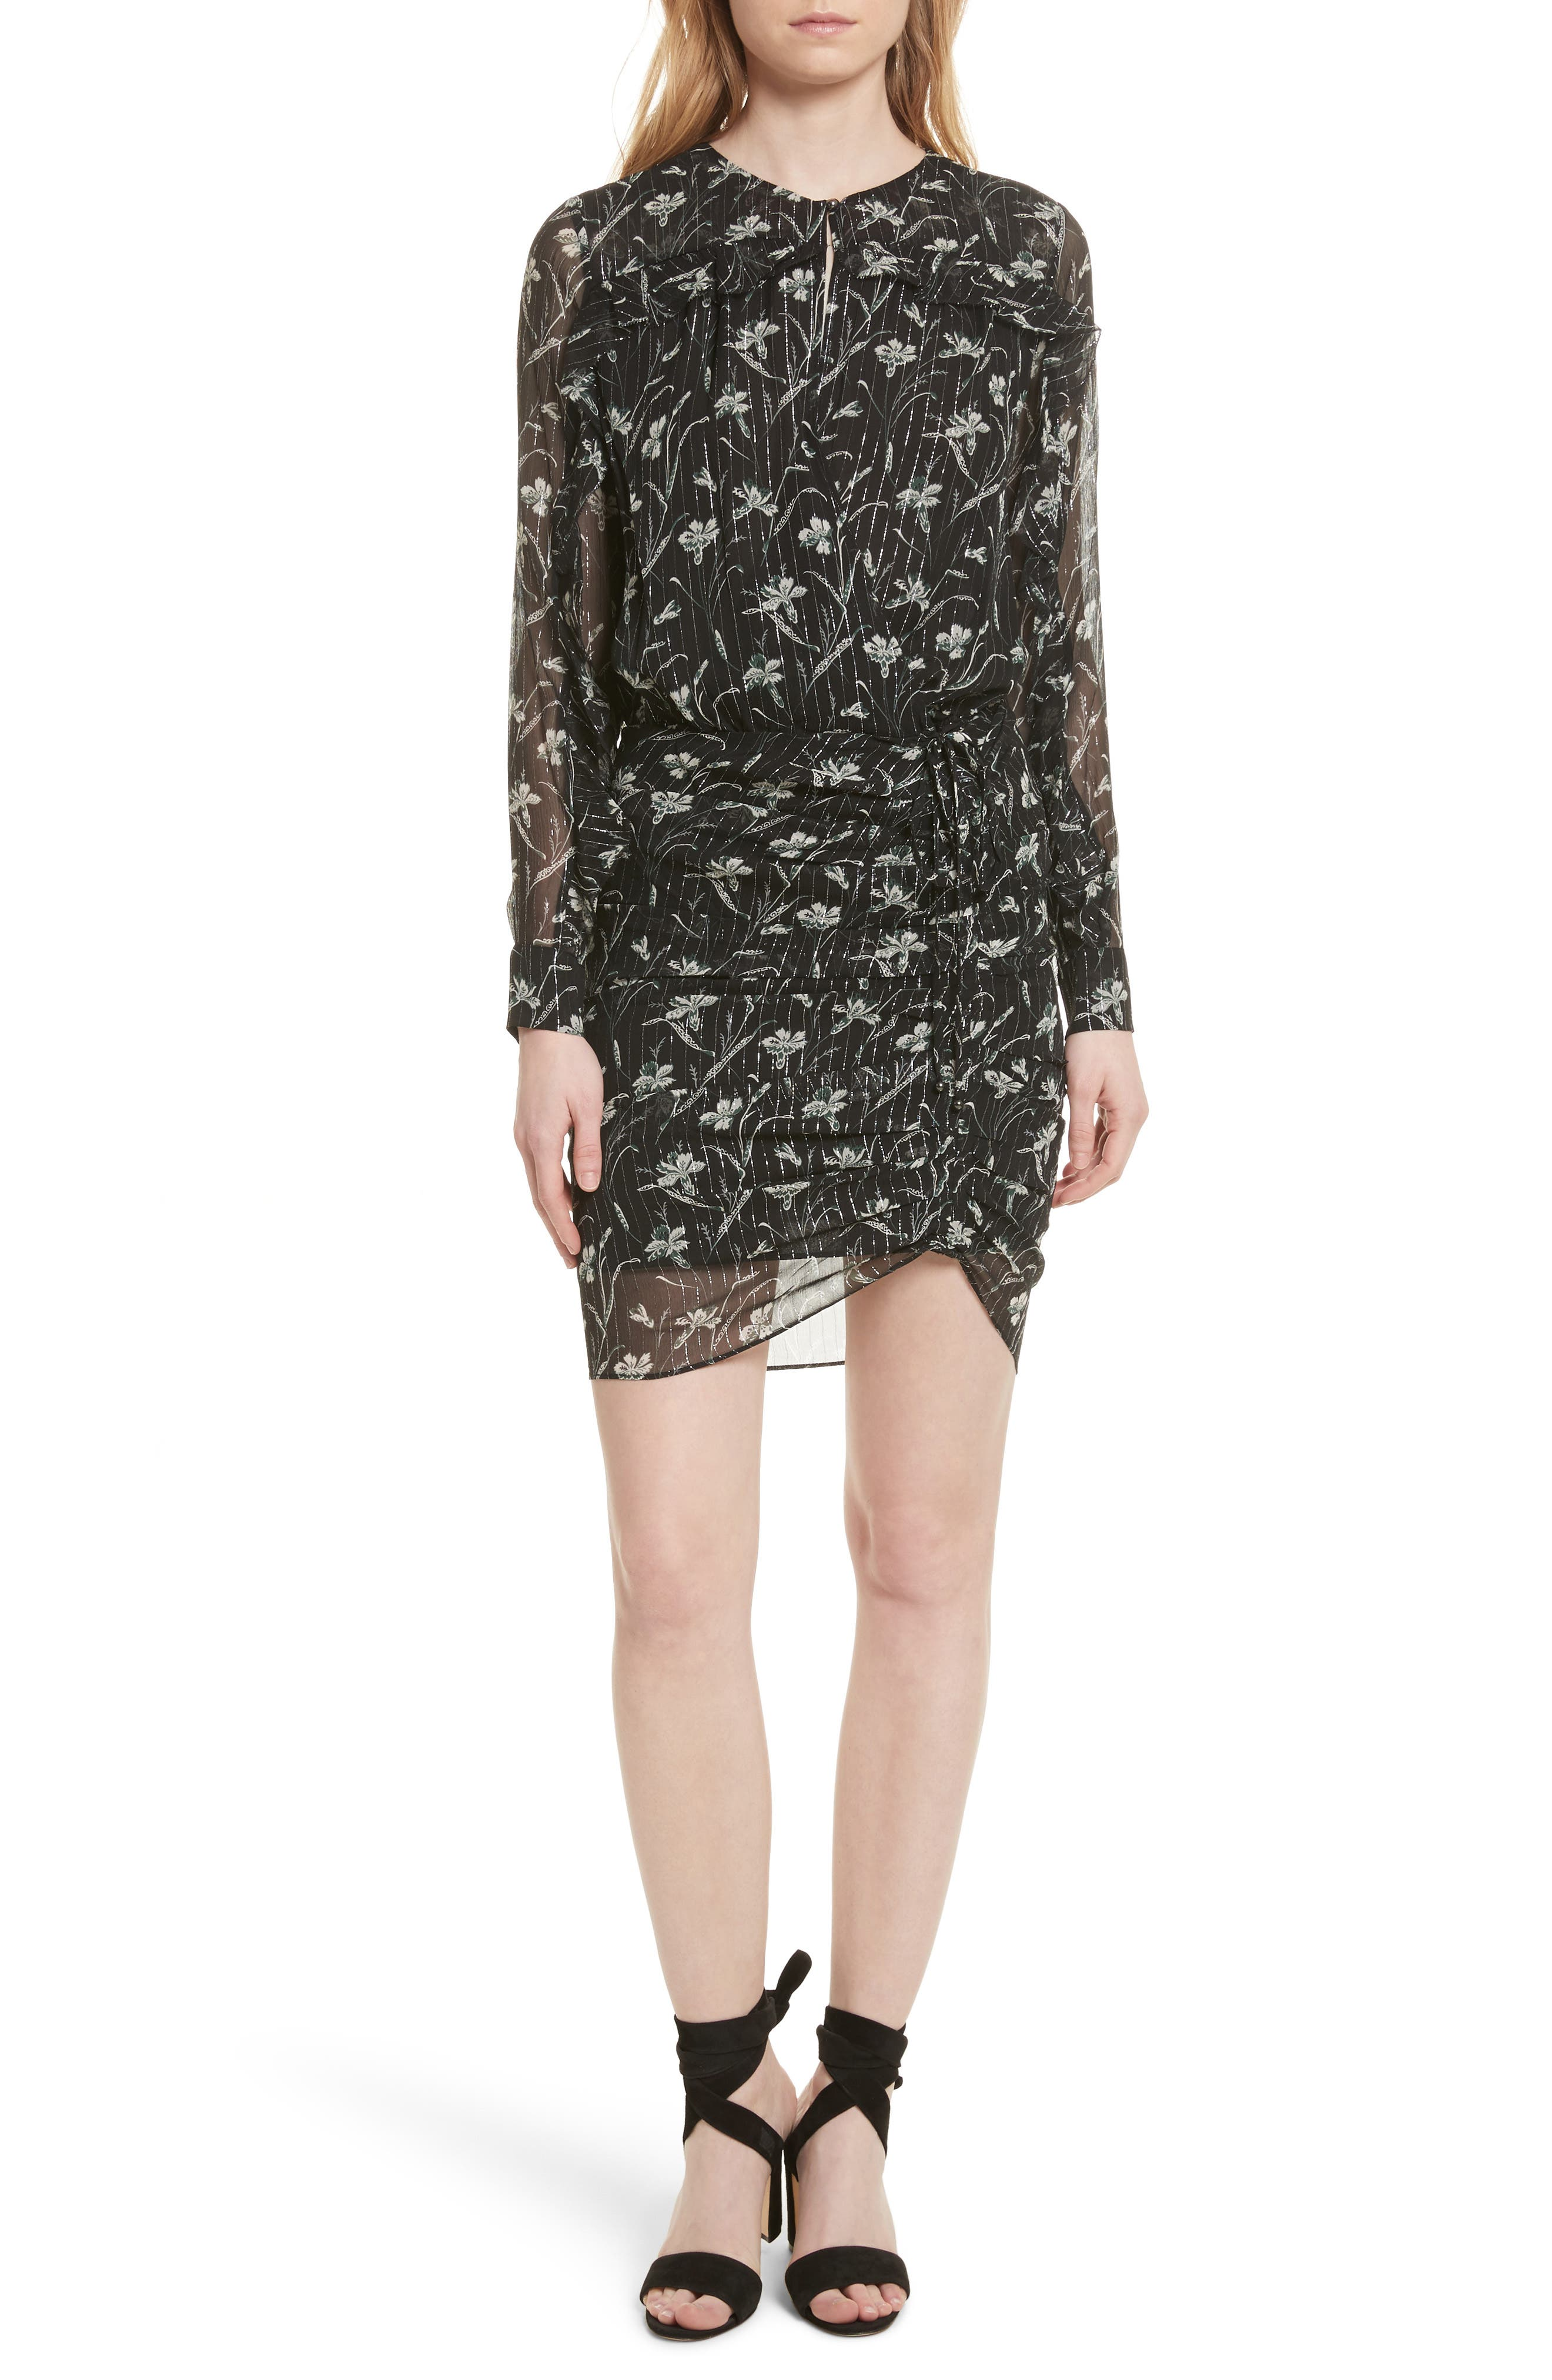 Fitzgerald Floral Print Metallic Chiffon Dress,                             Main thumbnail 1, color,                             301